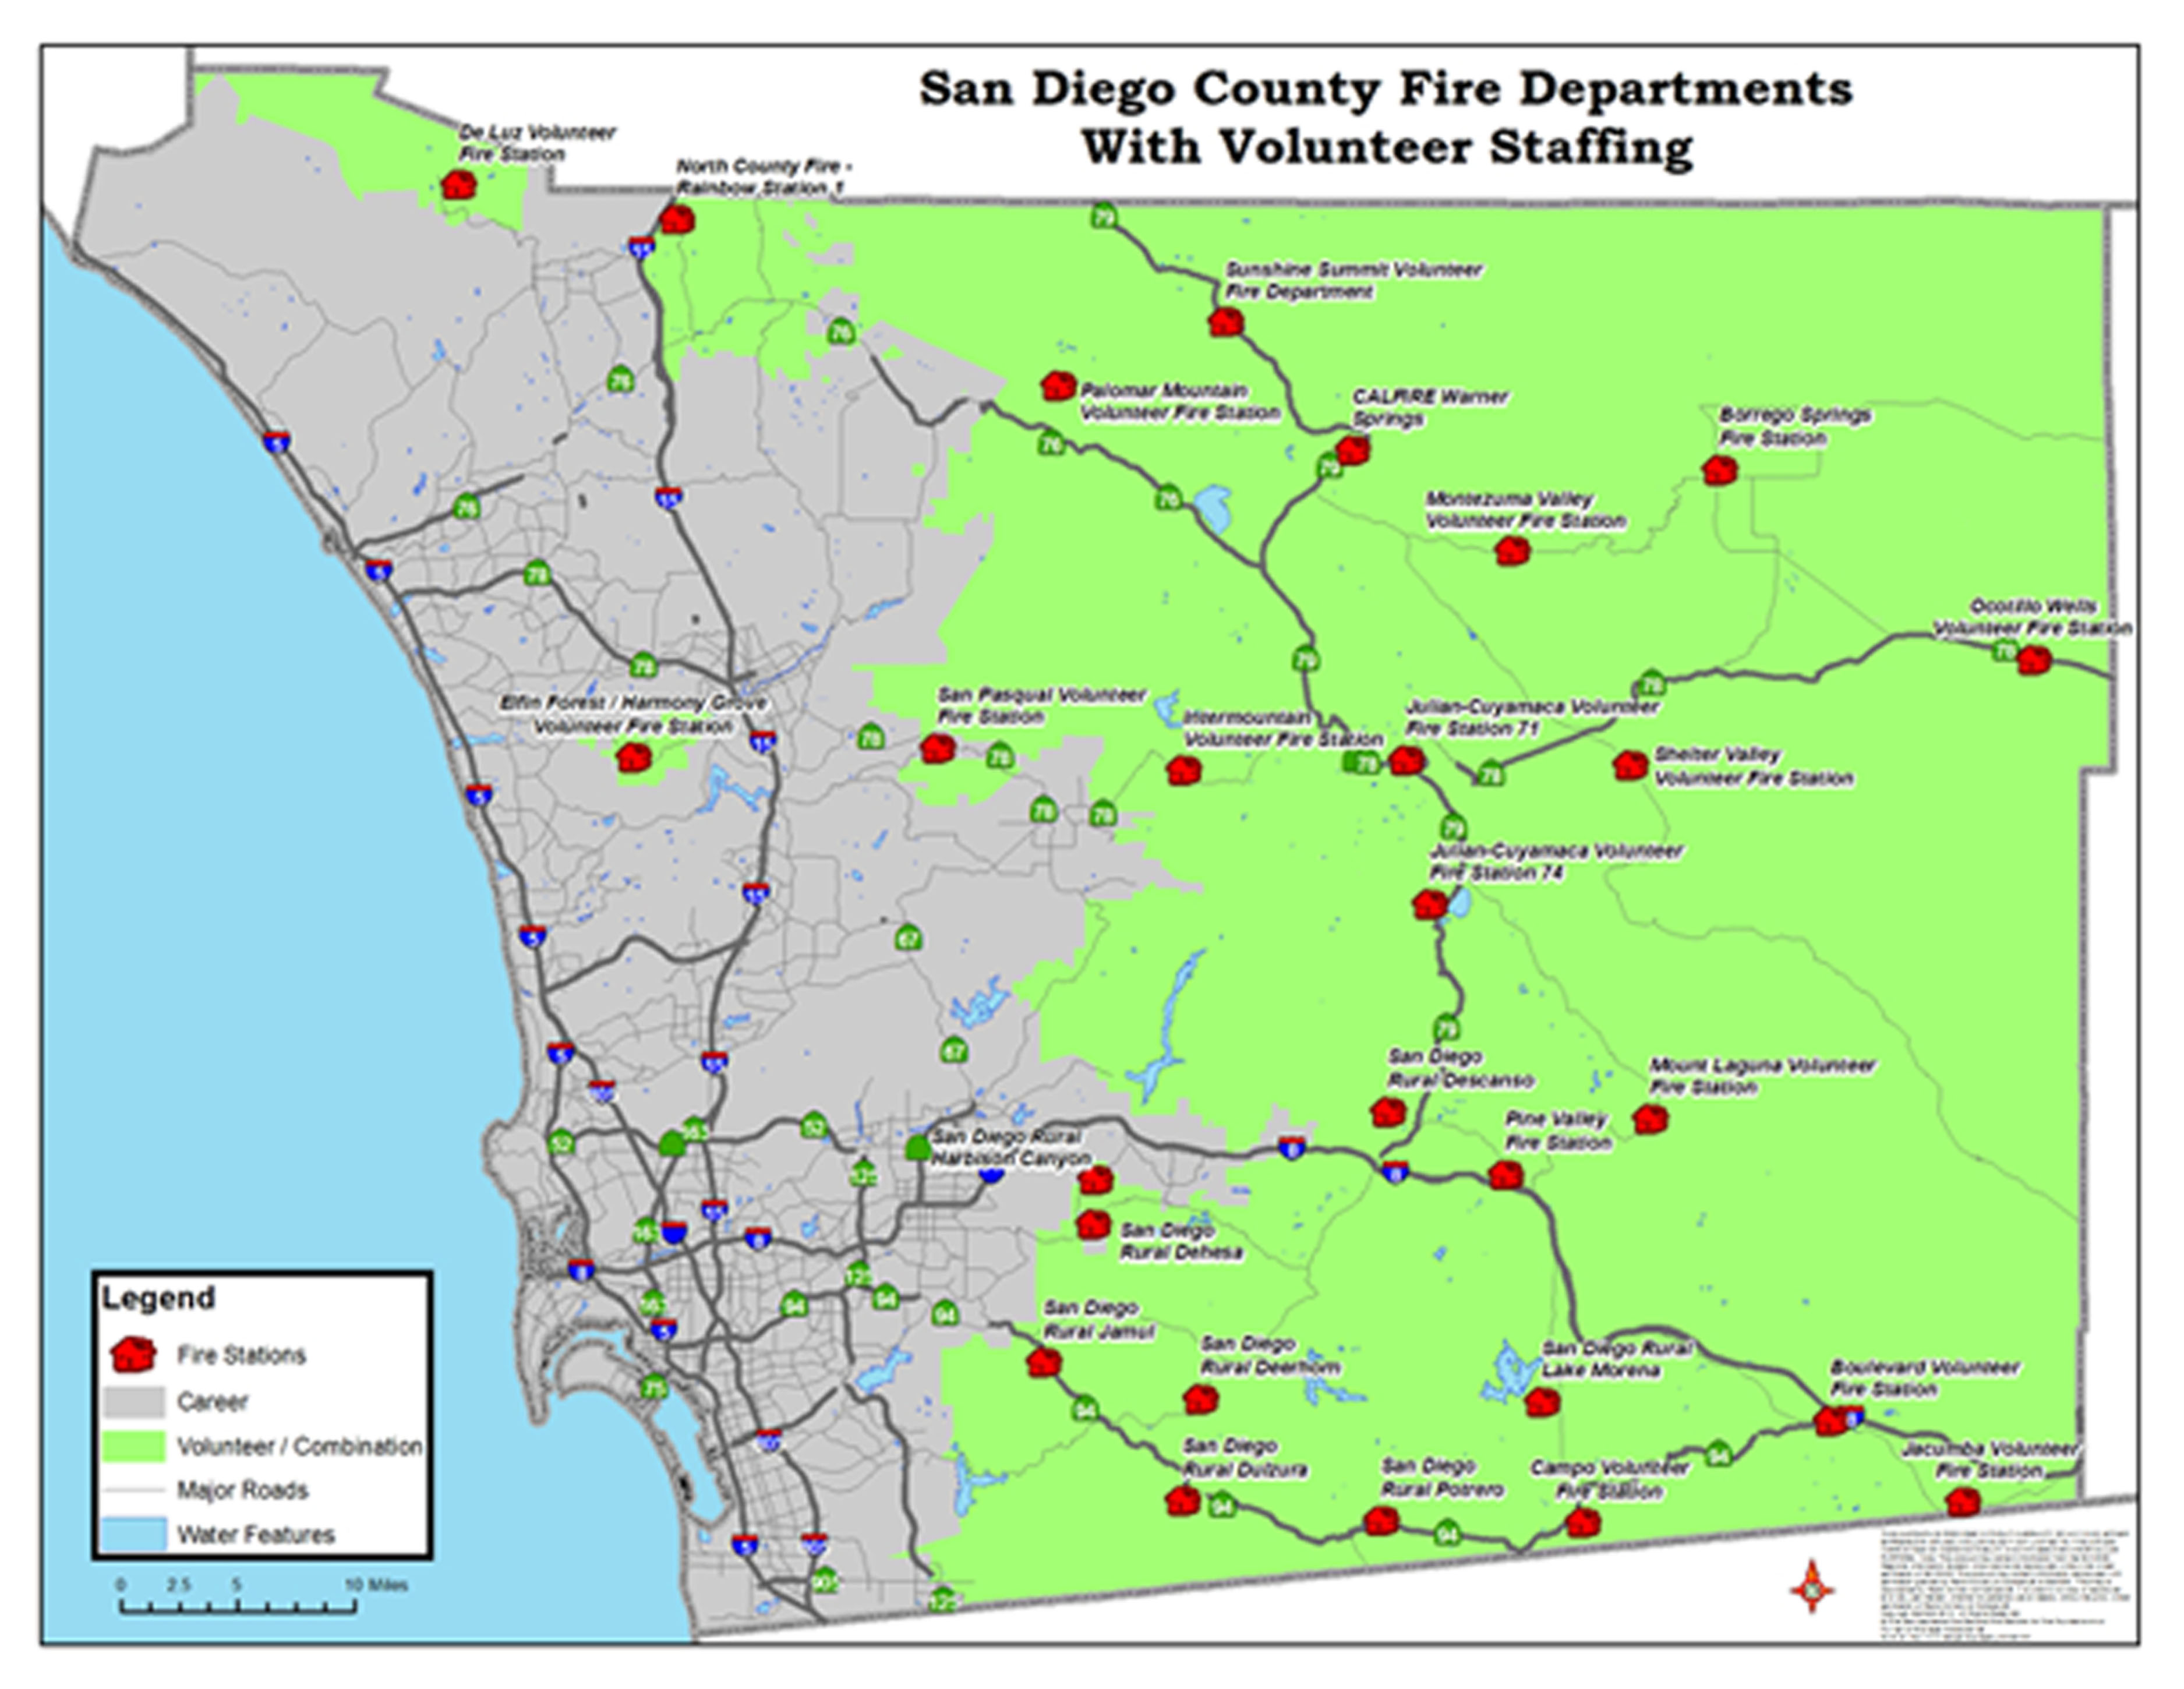 San Diego County Fire Station map